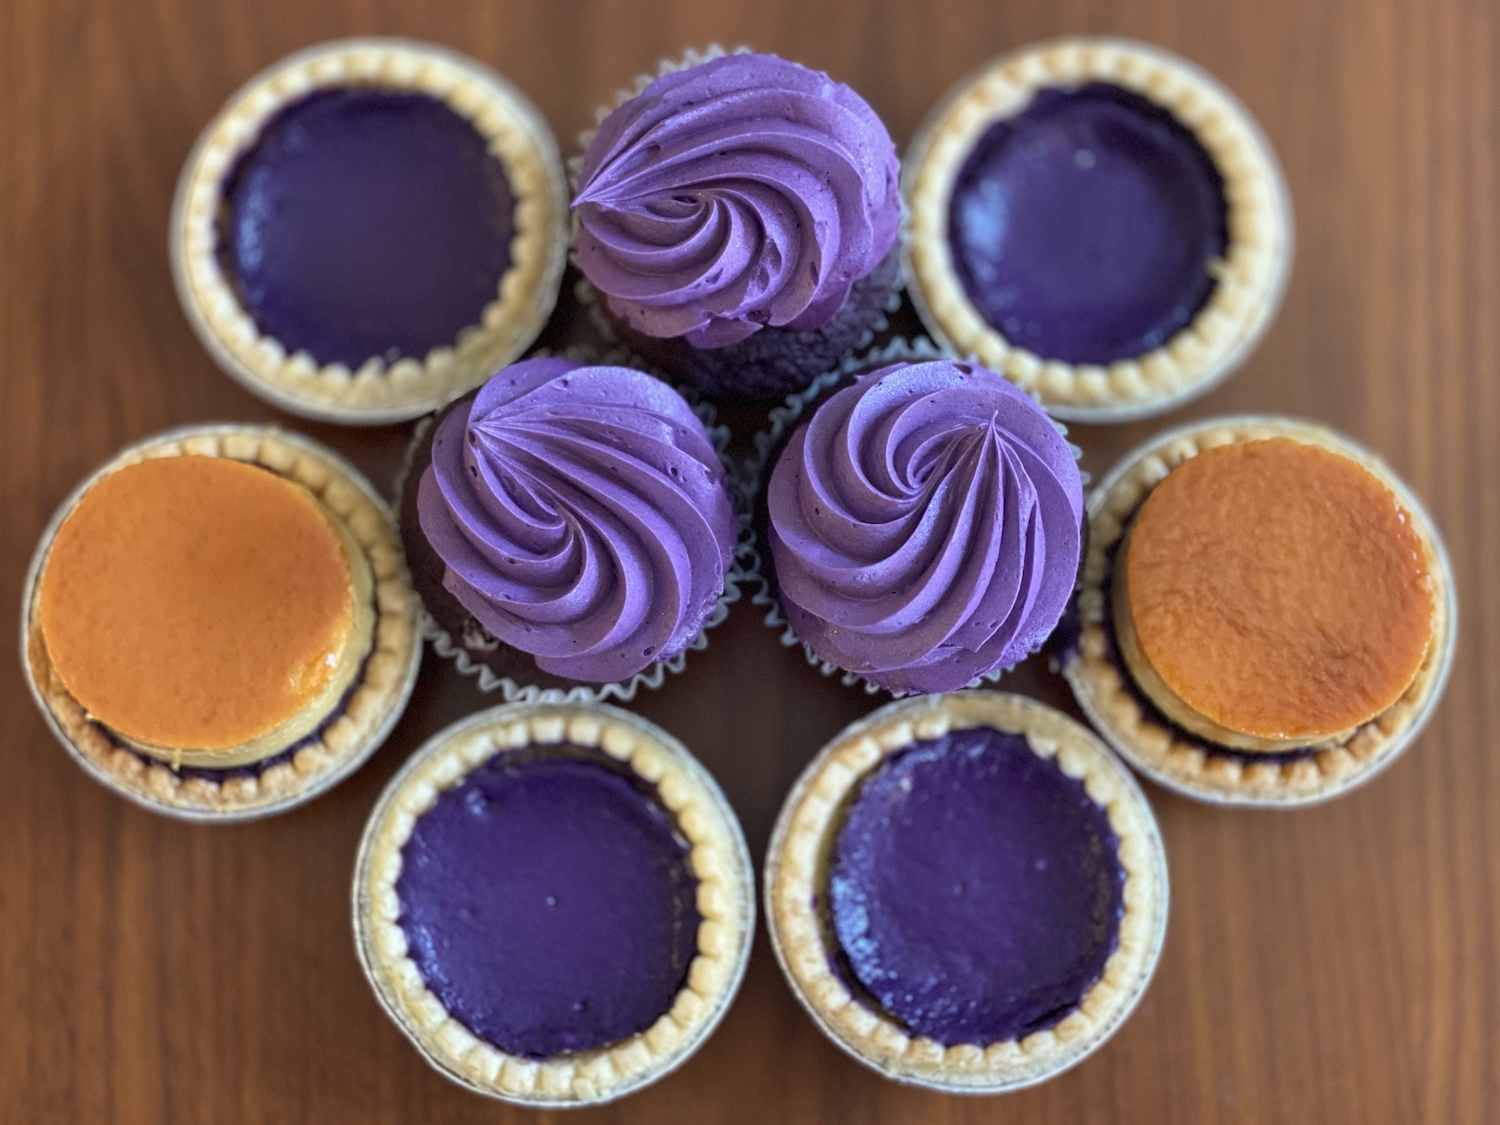 Ube cheesecakes, ube flan cheesecakes and ube cupcakes from Marley's Treats. Photo: Momo Chang